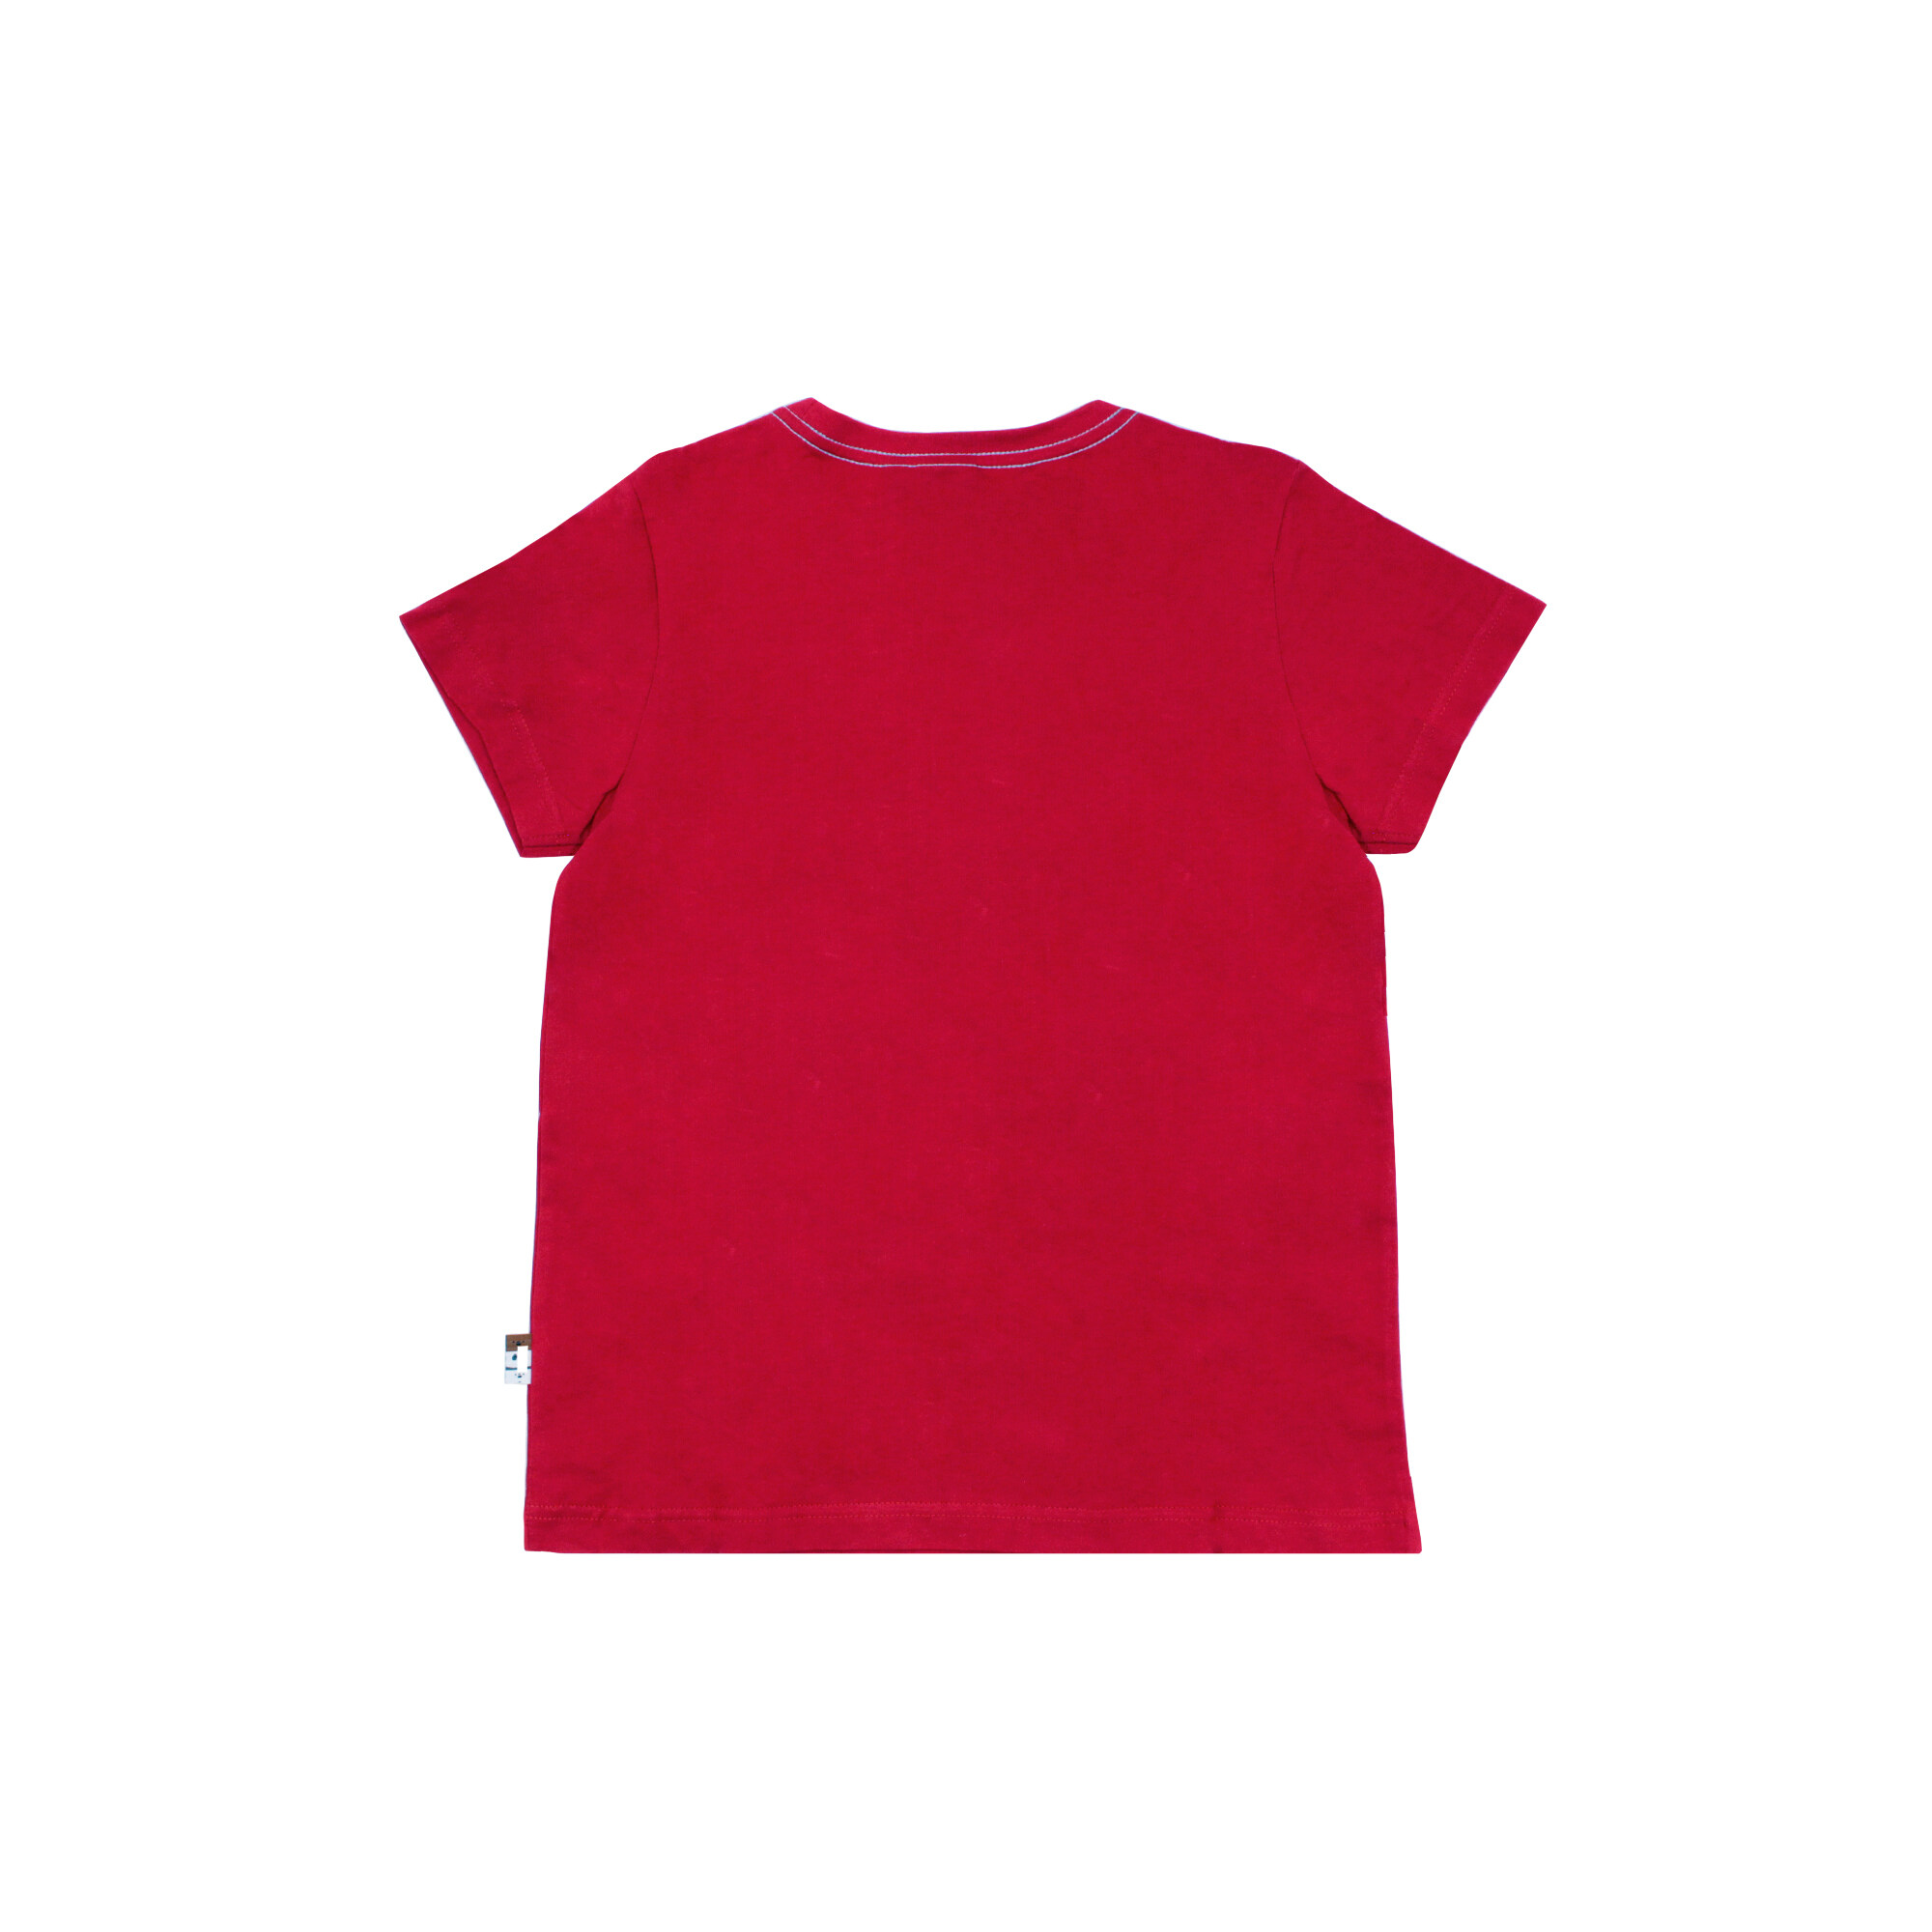 We Bare Bears Men Tee 100% Cotton Red Colour - Ice Bear